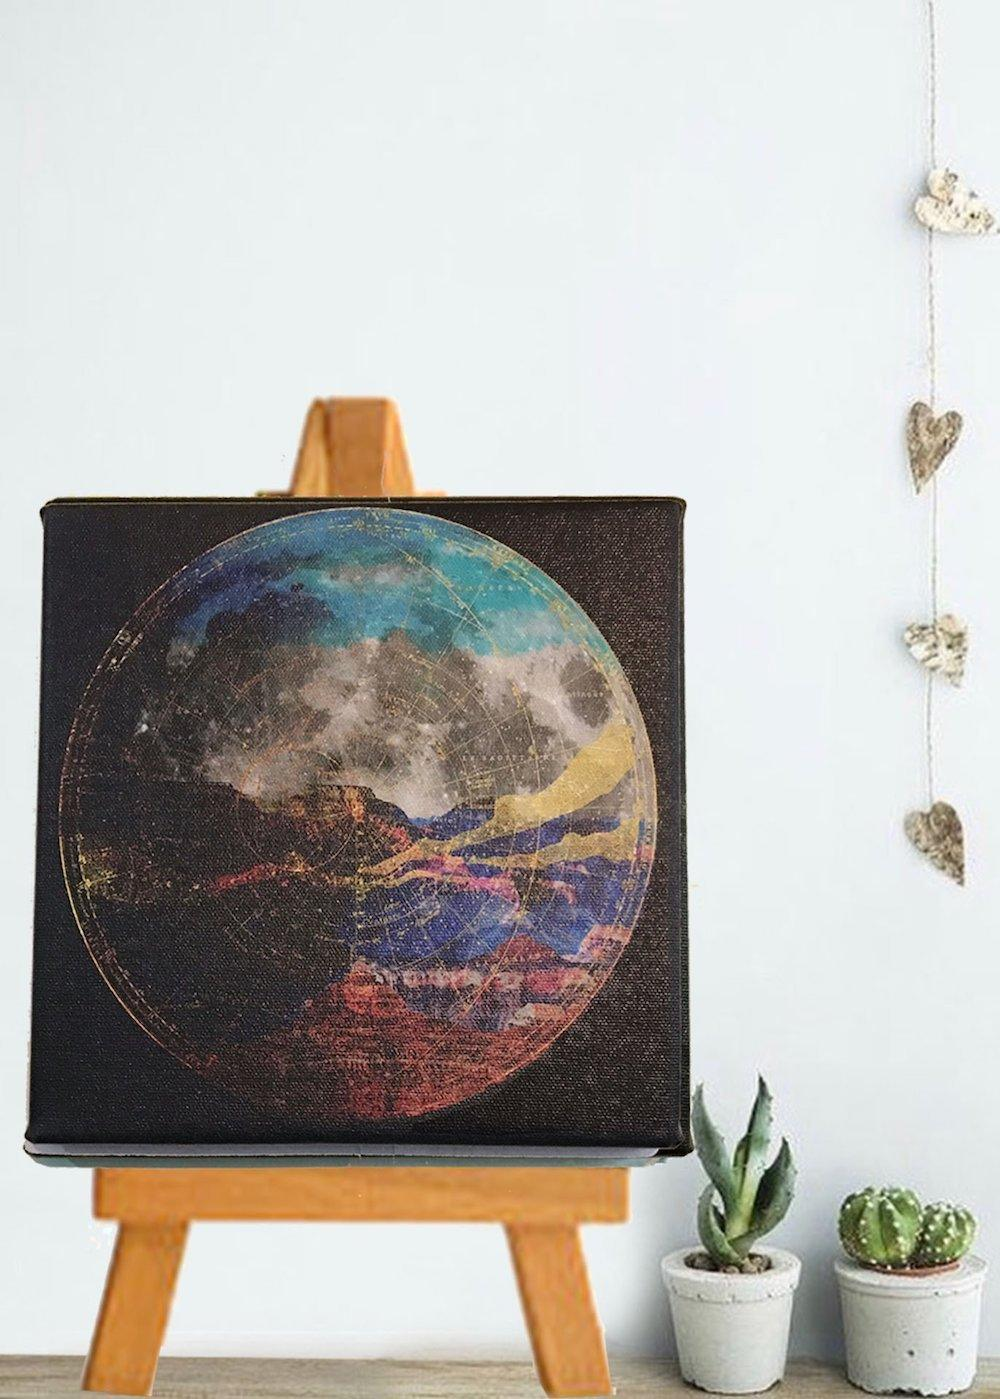 Desert on the Moon Art Canvas - moon art canvas 3